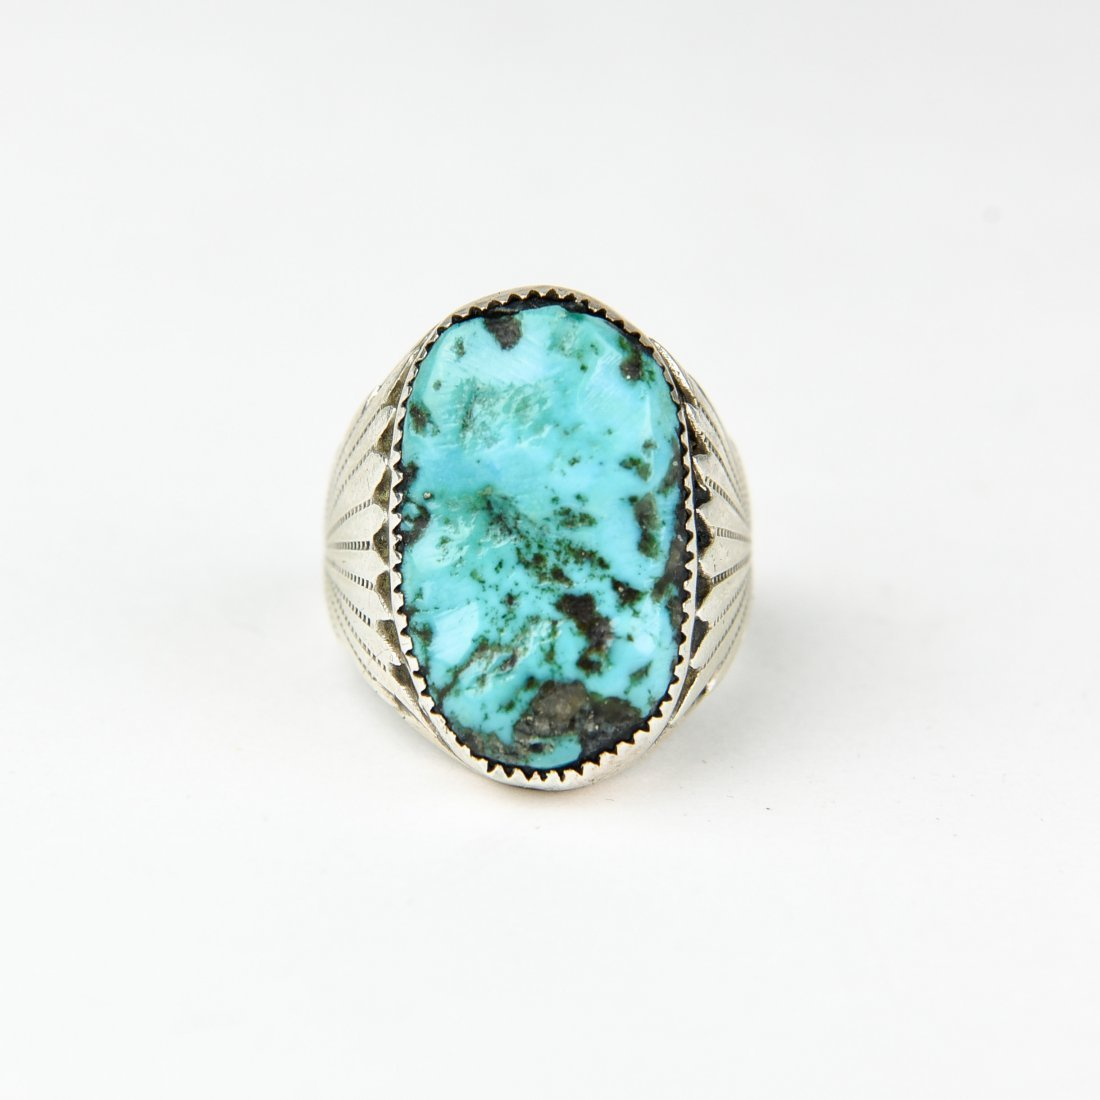 HEAVY NAVAJO STERLING AND TURQUOISE RING